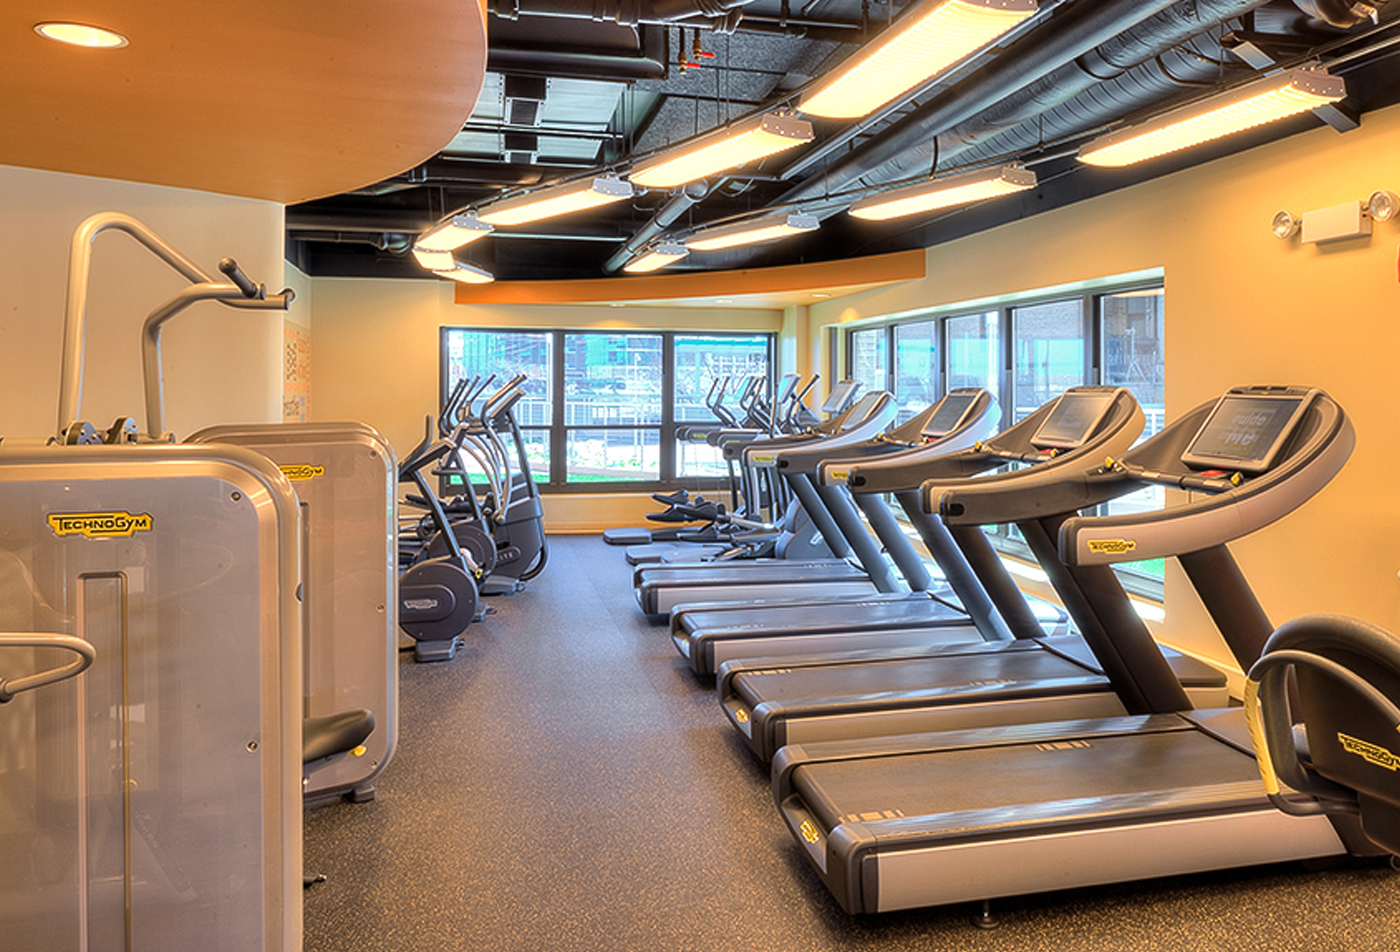 Fitness Center at 1130 South Michigan